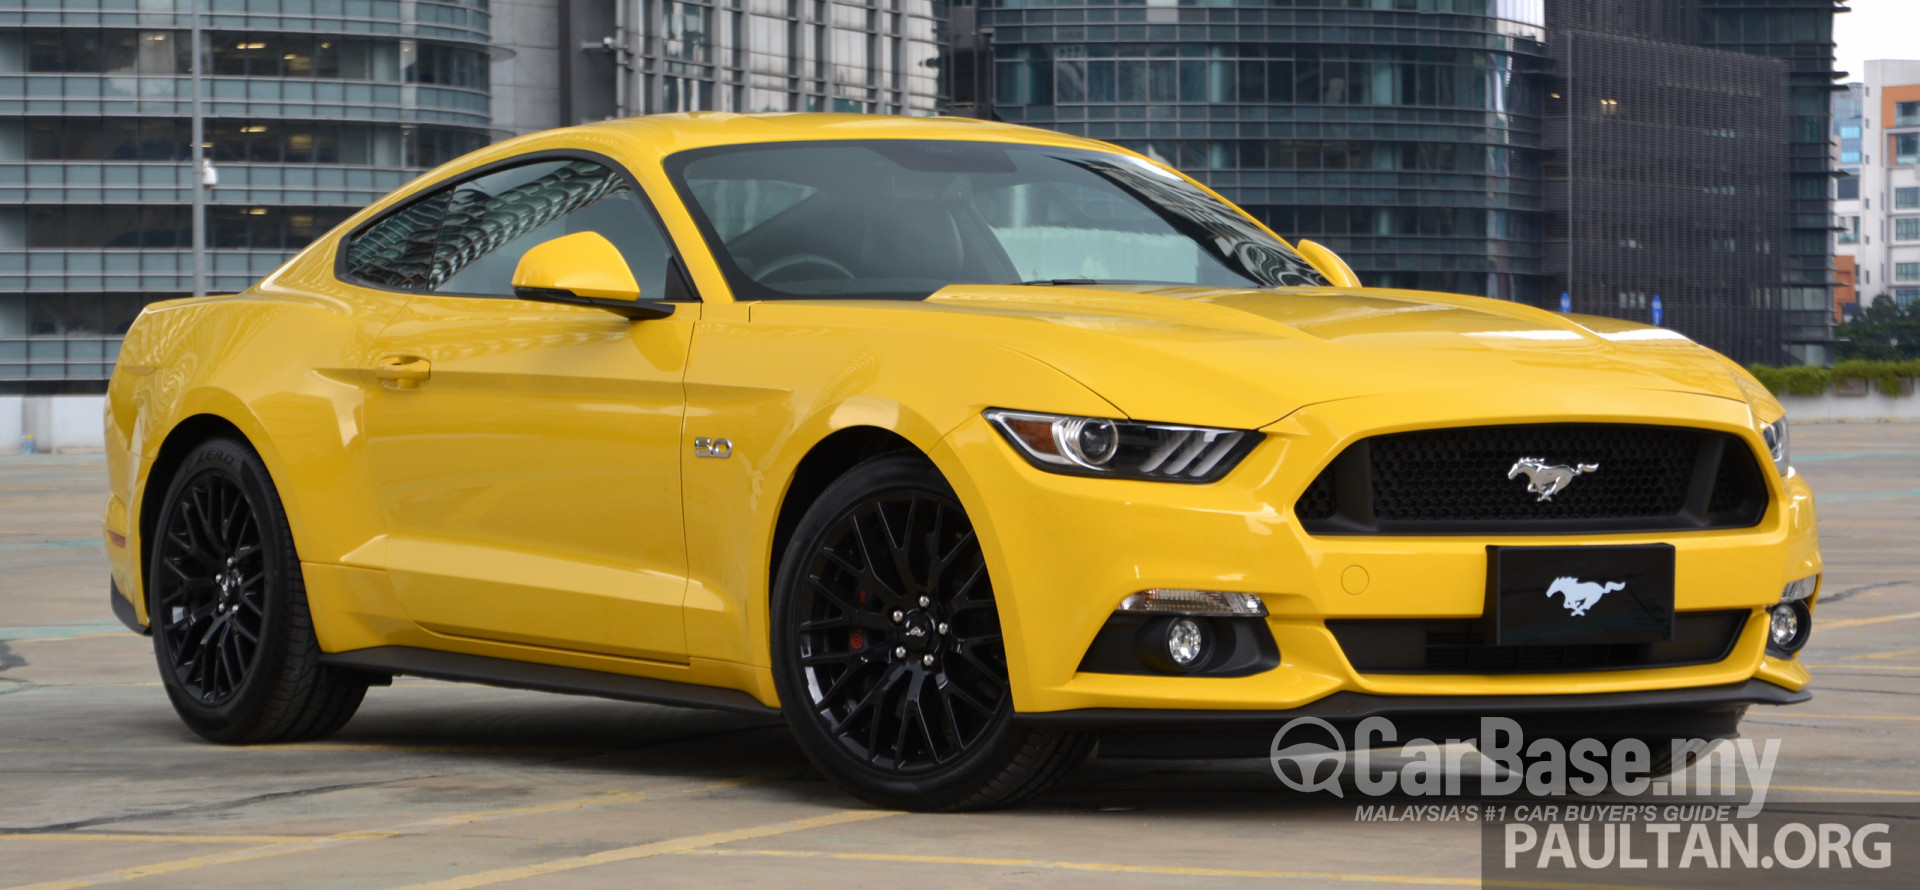 Ford Mustang S550 (2016) Exterior Image #47286 in Malaysia - Reviews, Specs, Prices - CarBase.my